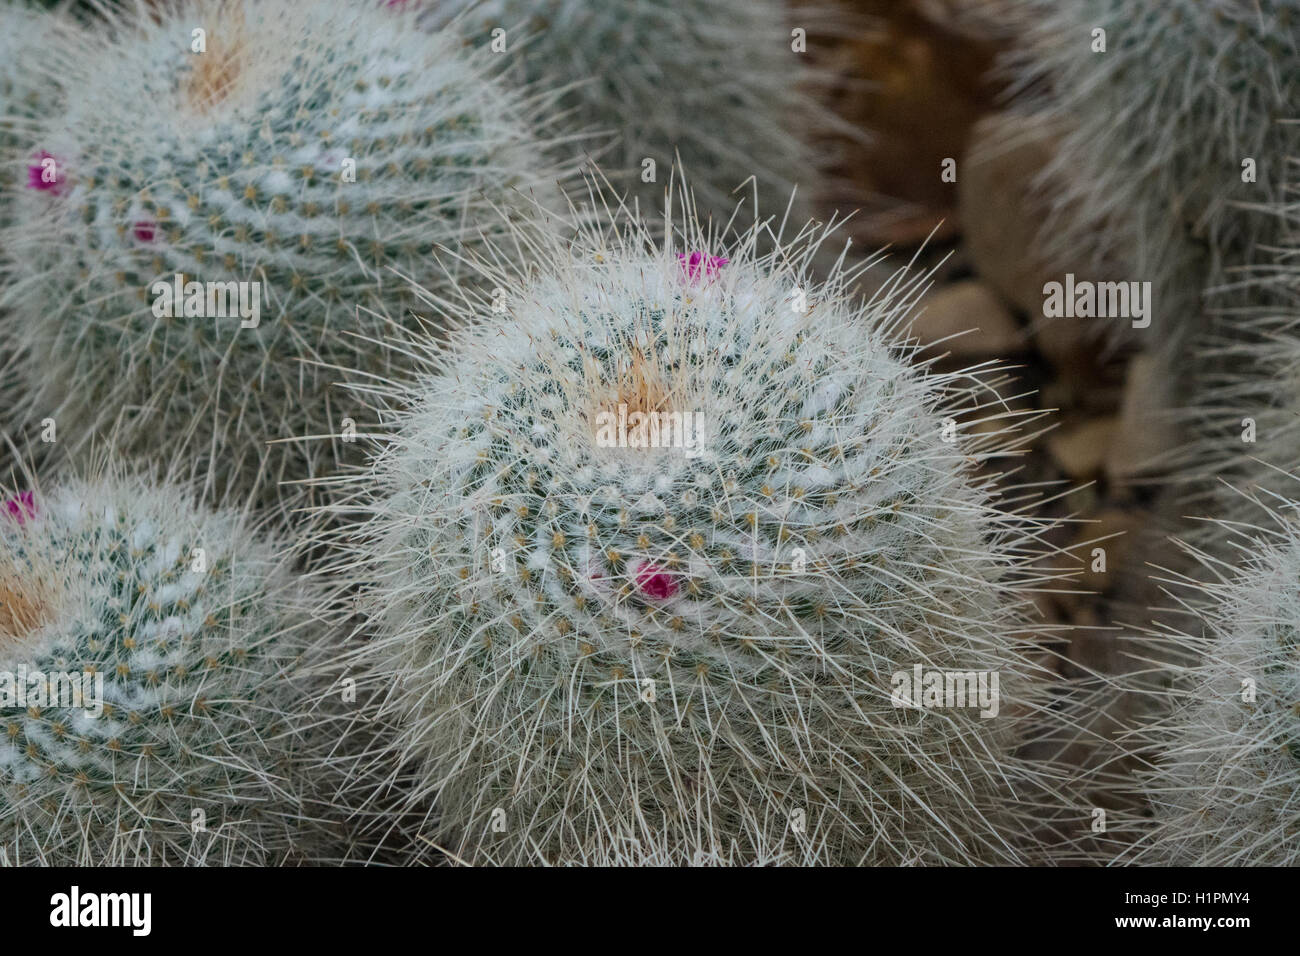 The hairy cactus